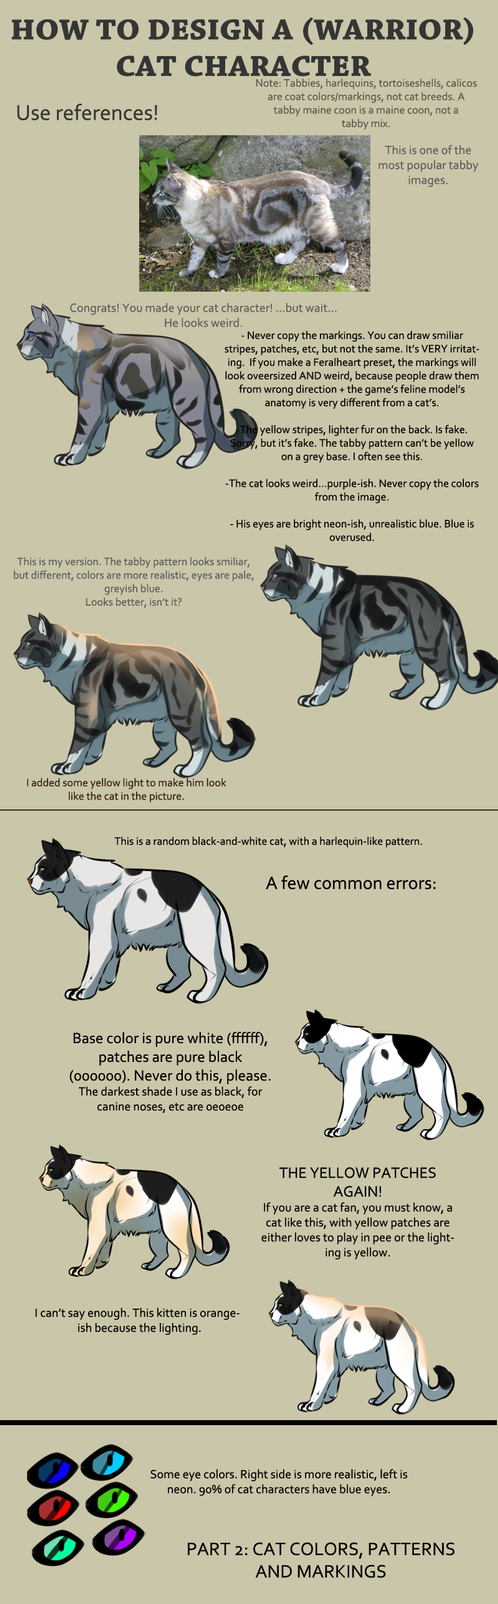 How to design cats by Mossasaurus on DeviantArt